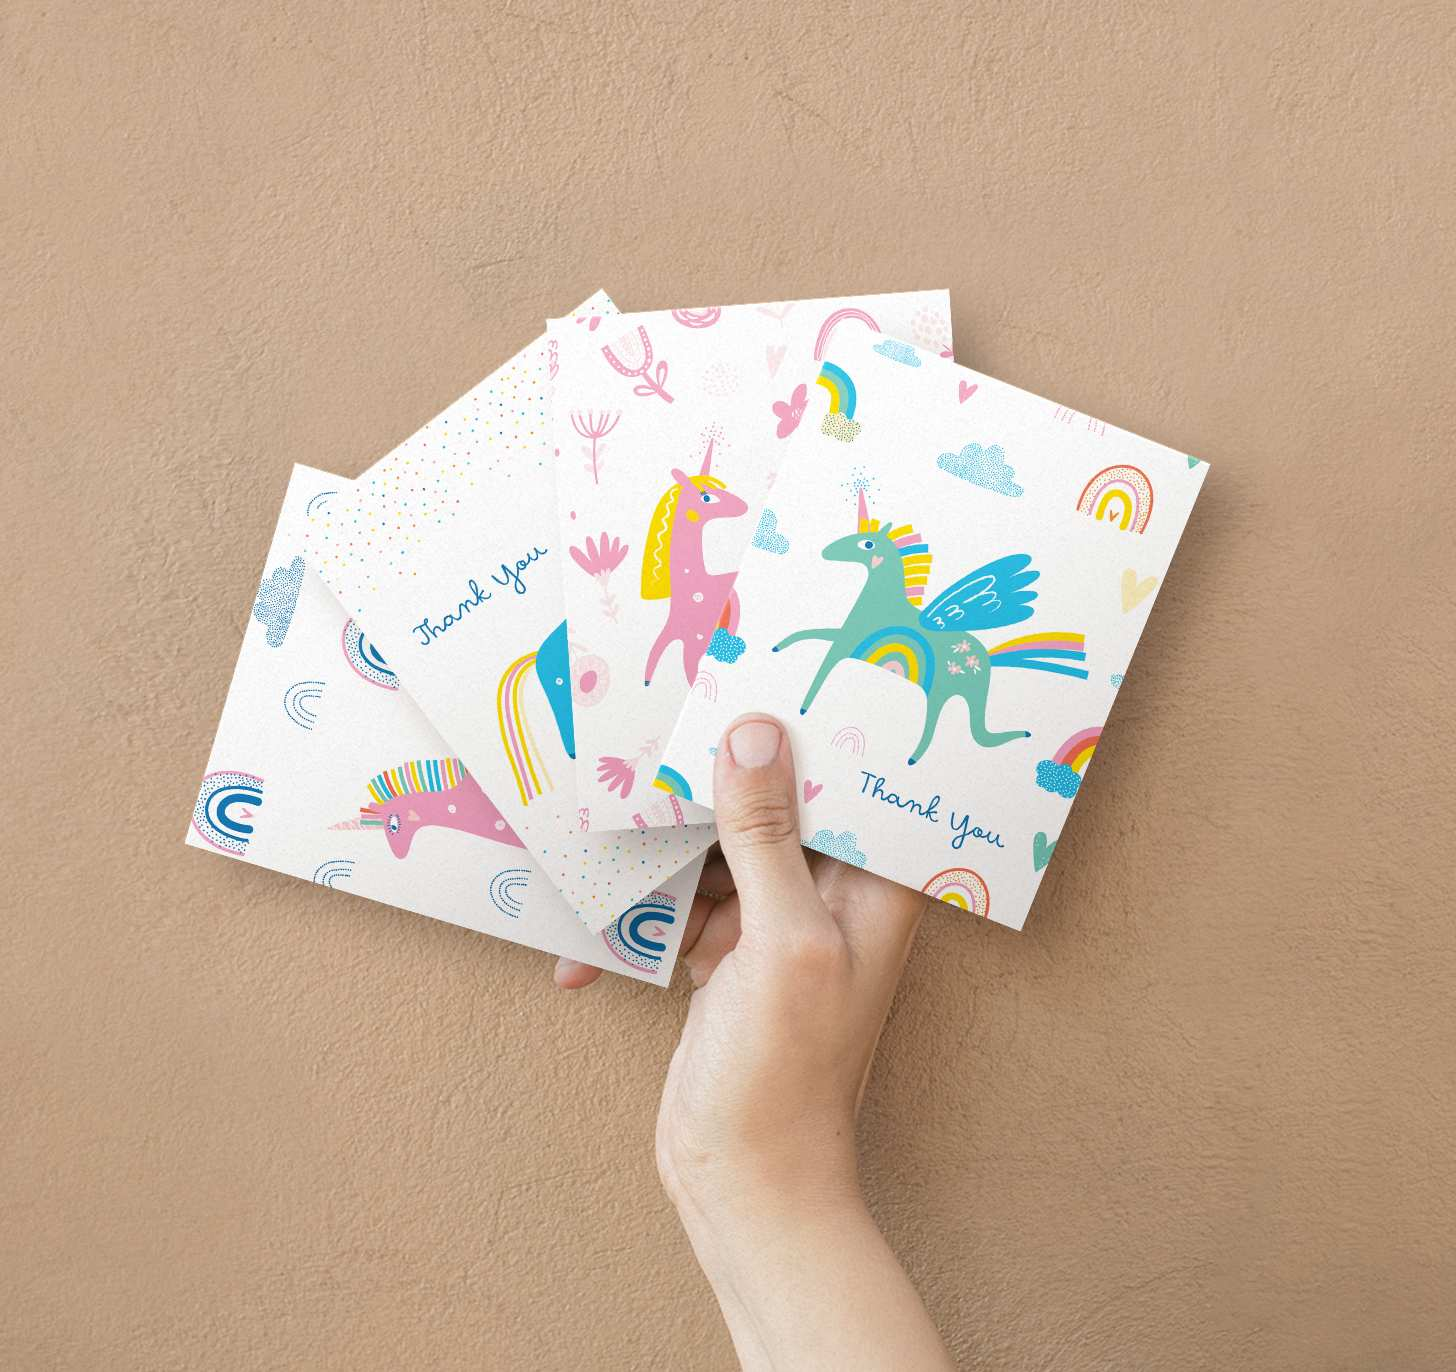 Hands holding four overlapping unicorn cards with assorted designs